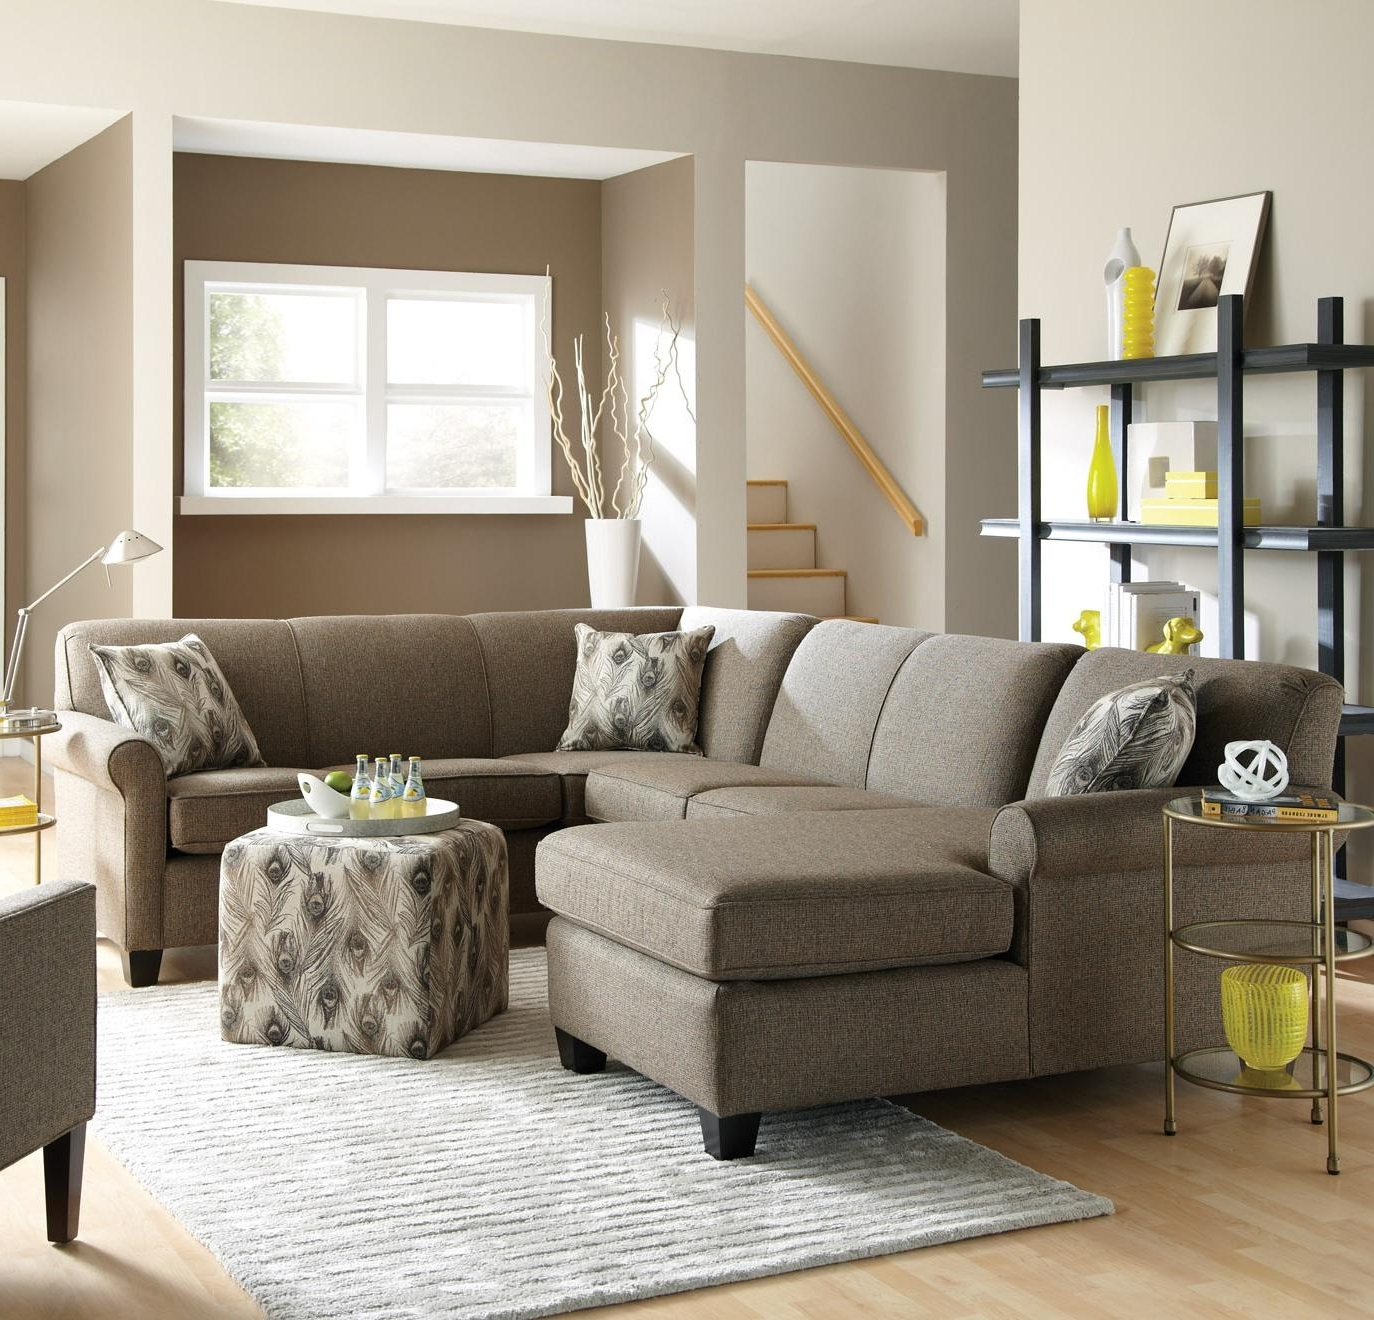 Best And Newest England Sectional Sofas Inside England Angie Long Sectional Sofa With Chaise – Ahfa – Sofa (View 3 of 20)